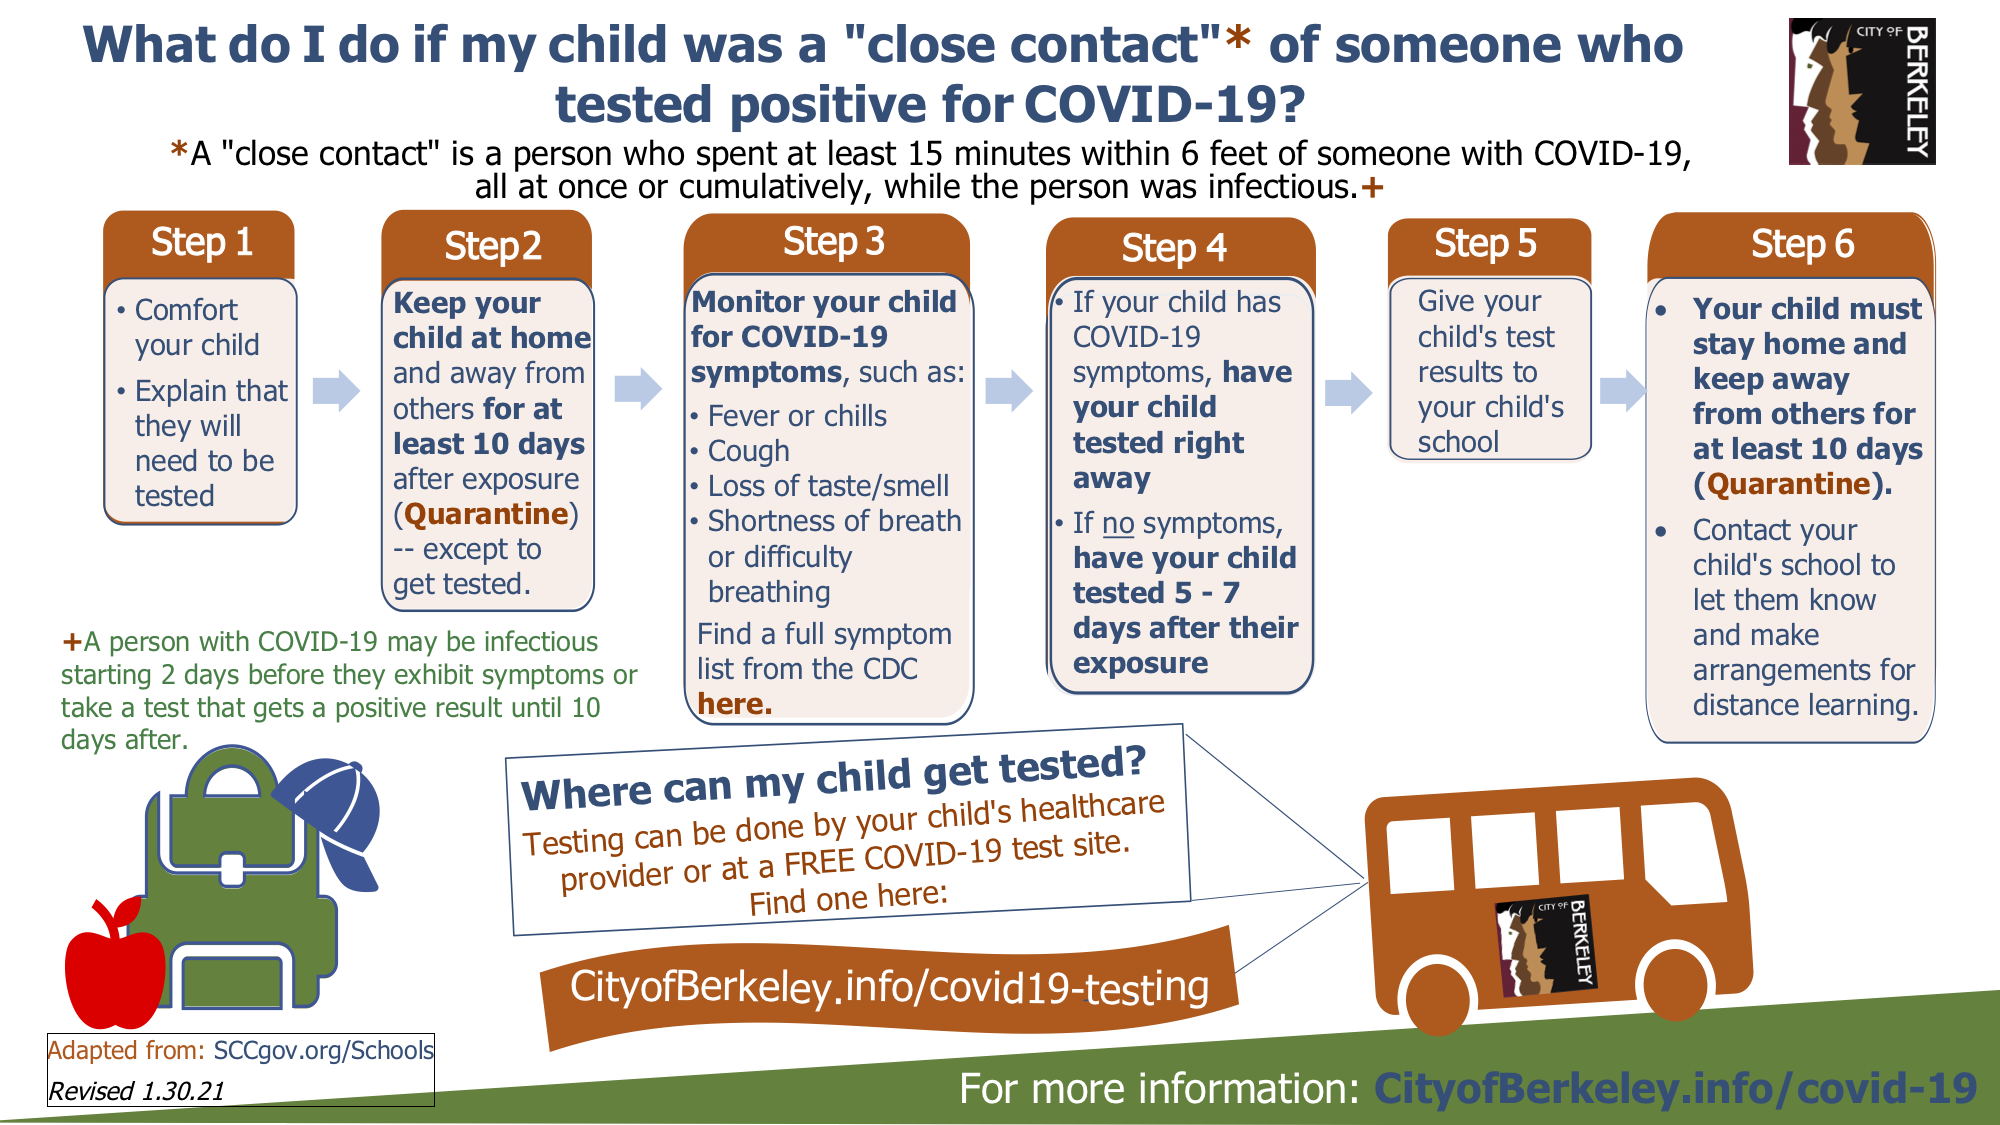 Information about what to do if your child was a close contact with someone who has COVID